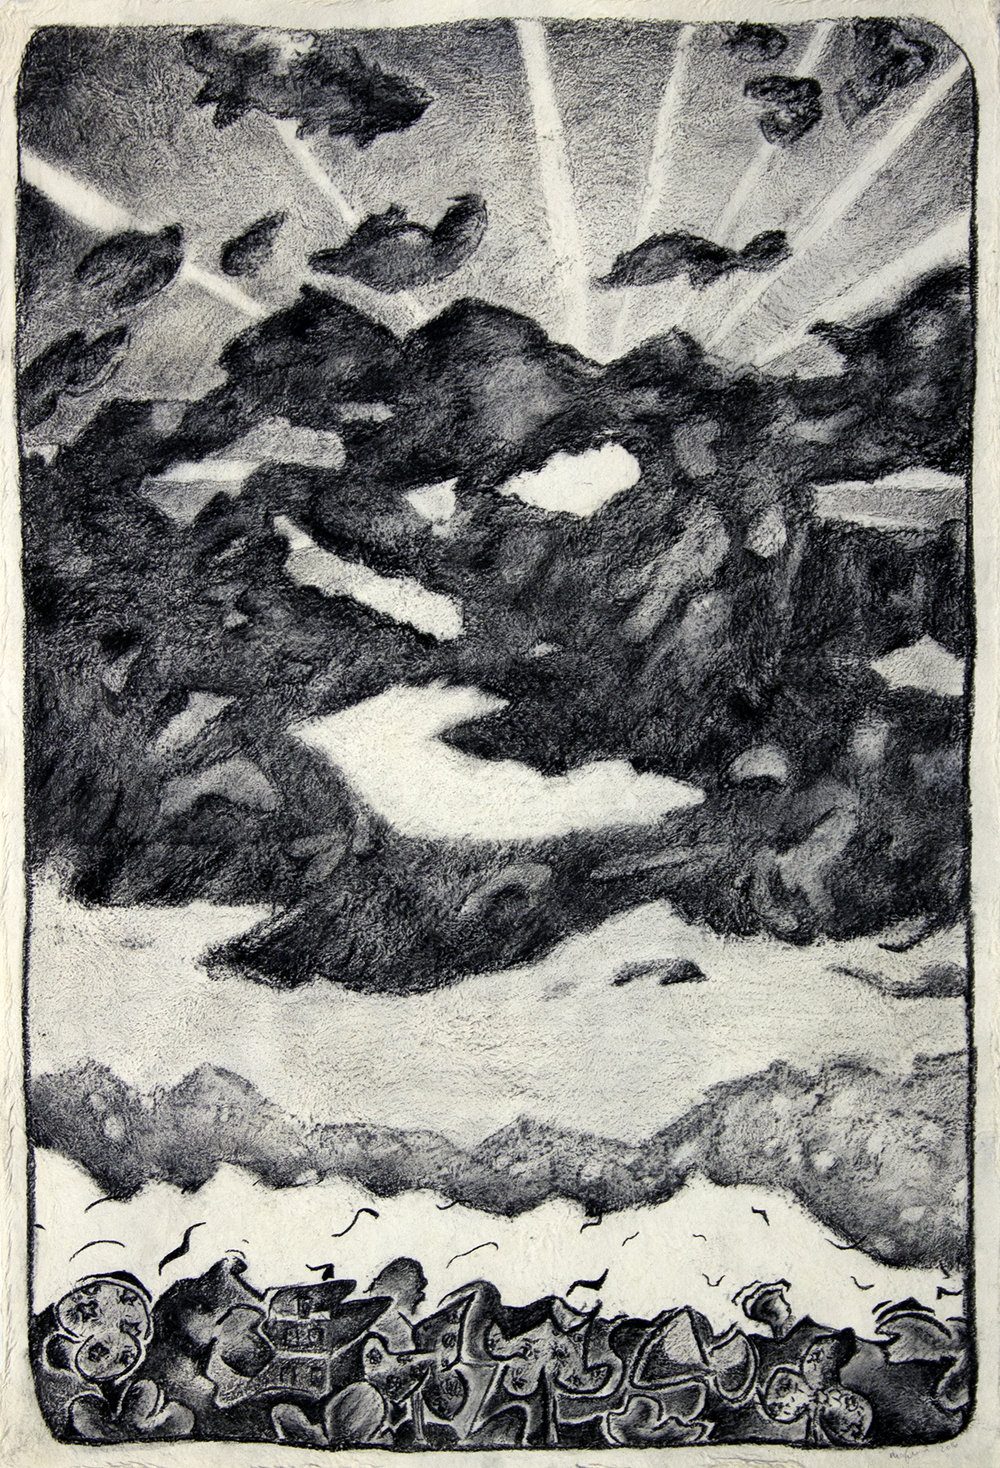 Study for Oaxacan landscape, 2